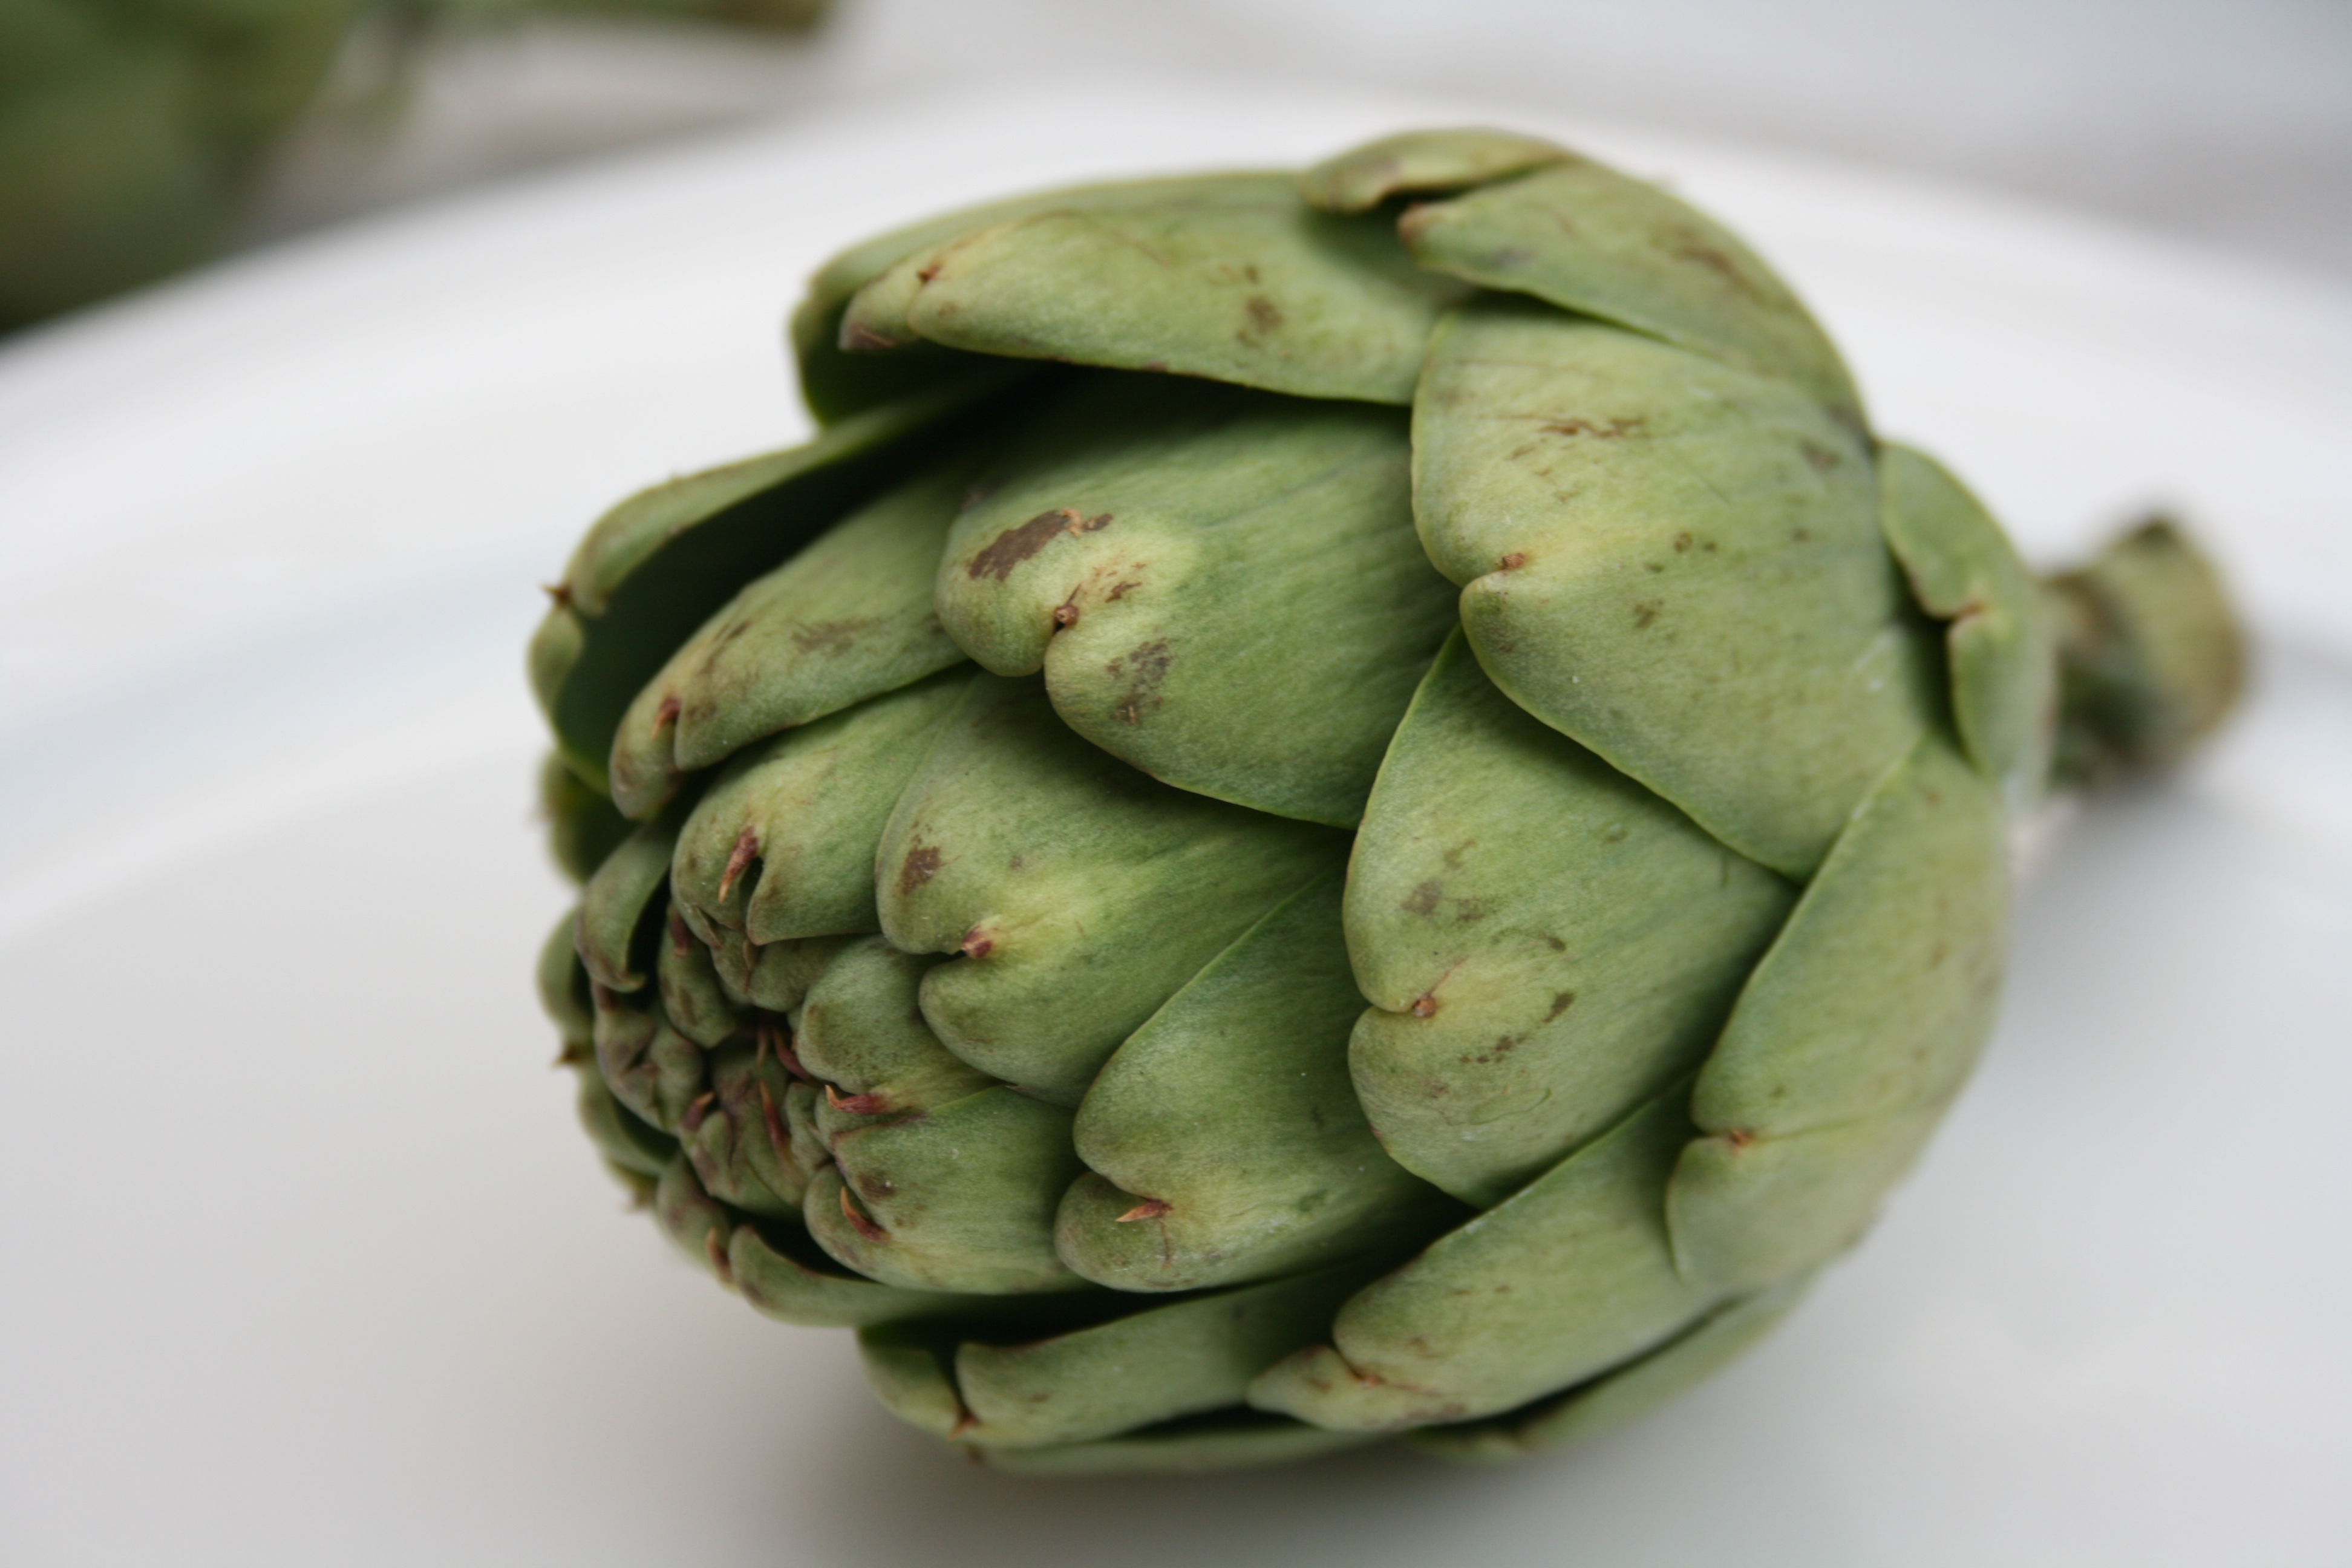 artichoke extract lowers cholesterol and triglycerides